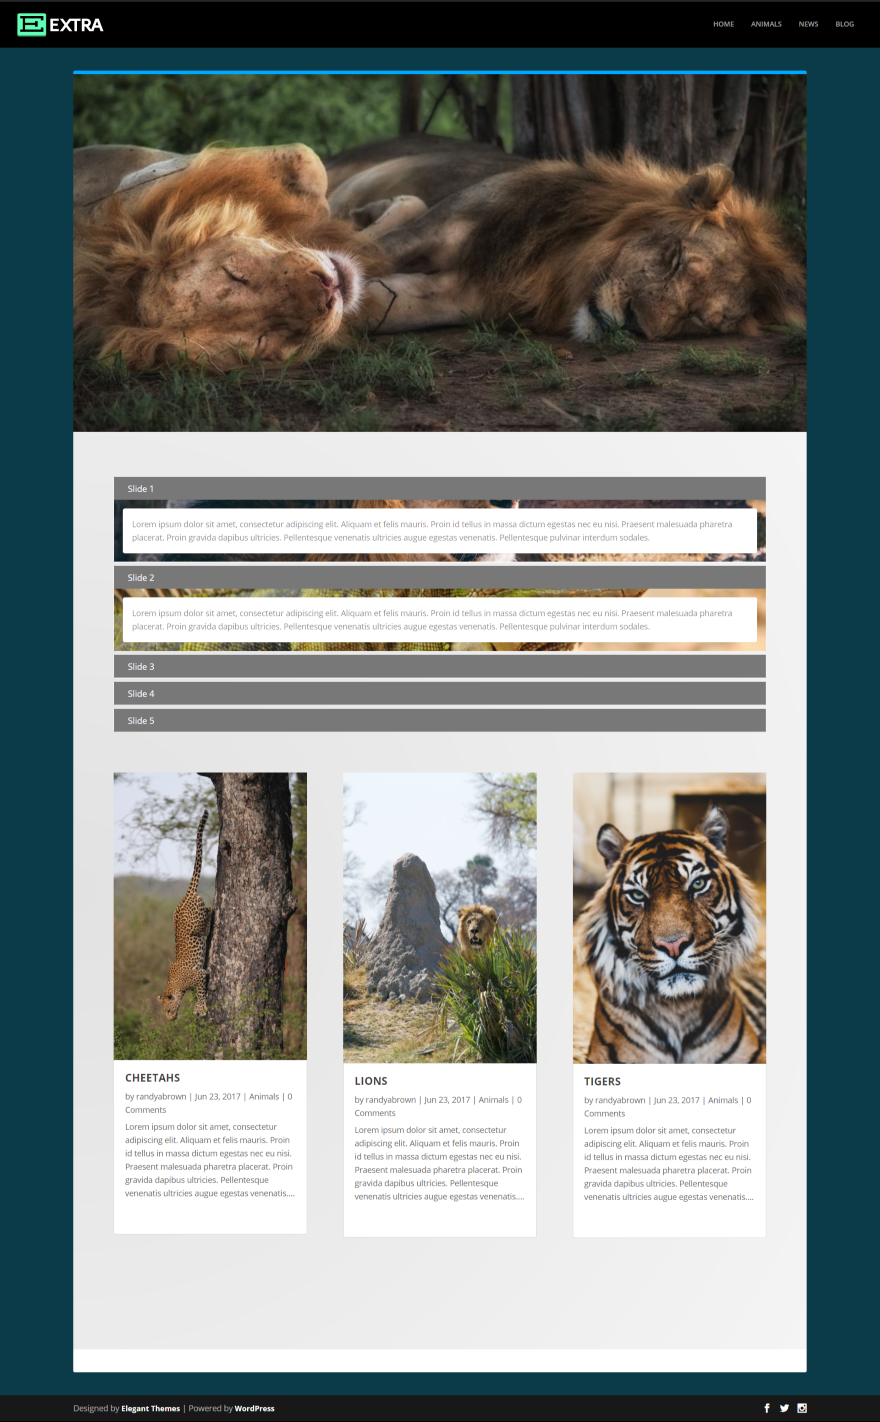 Designed by elegant themes powered by wordpress - Here S A Look At The Blog Page Using Theme 7 In Extra Divi Accordion Works The Same With Extra As It Does With Divi